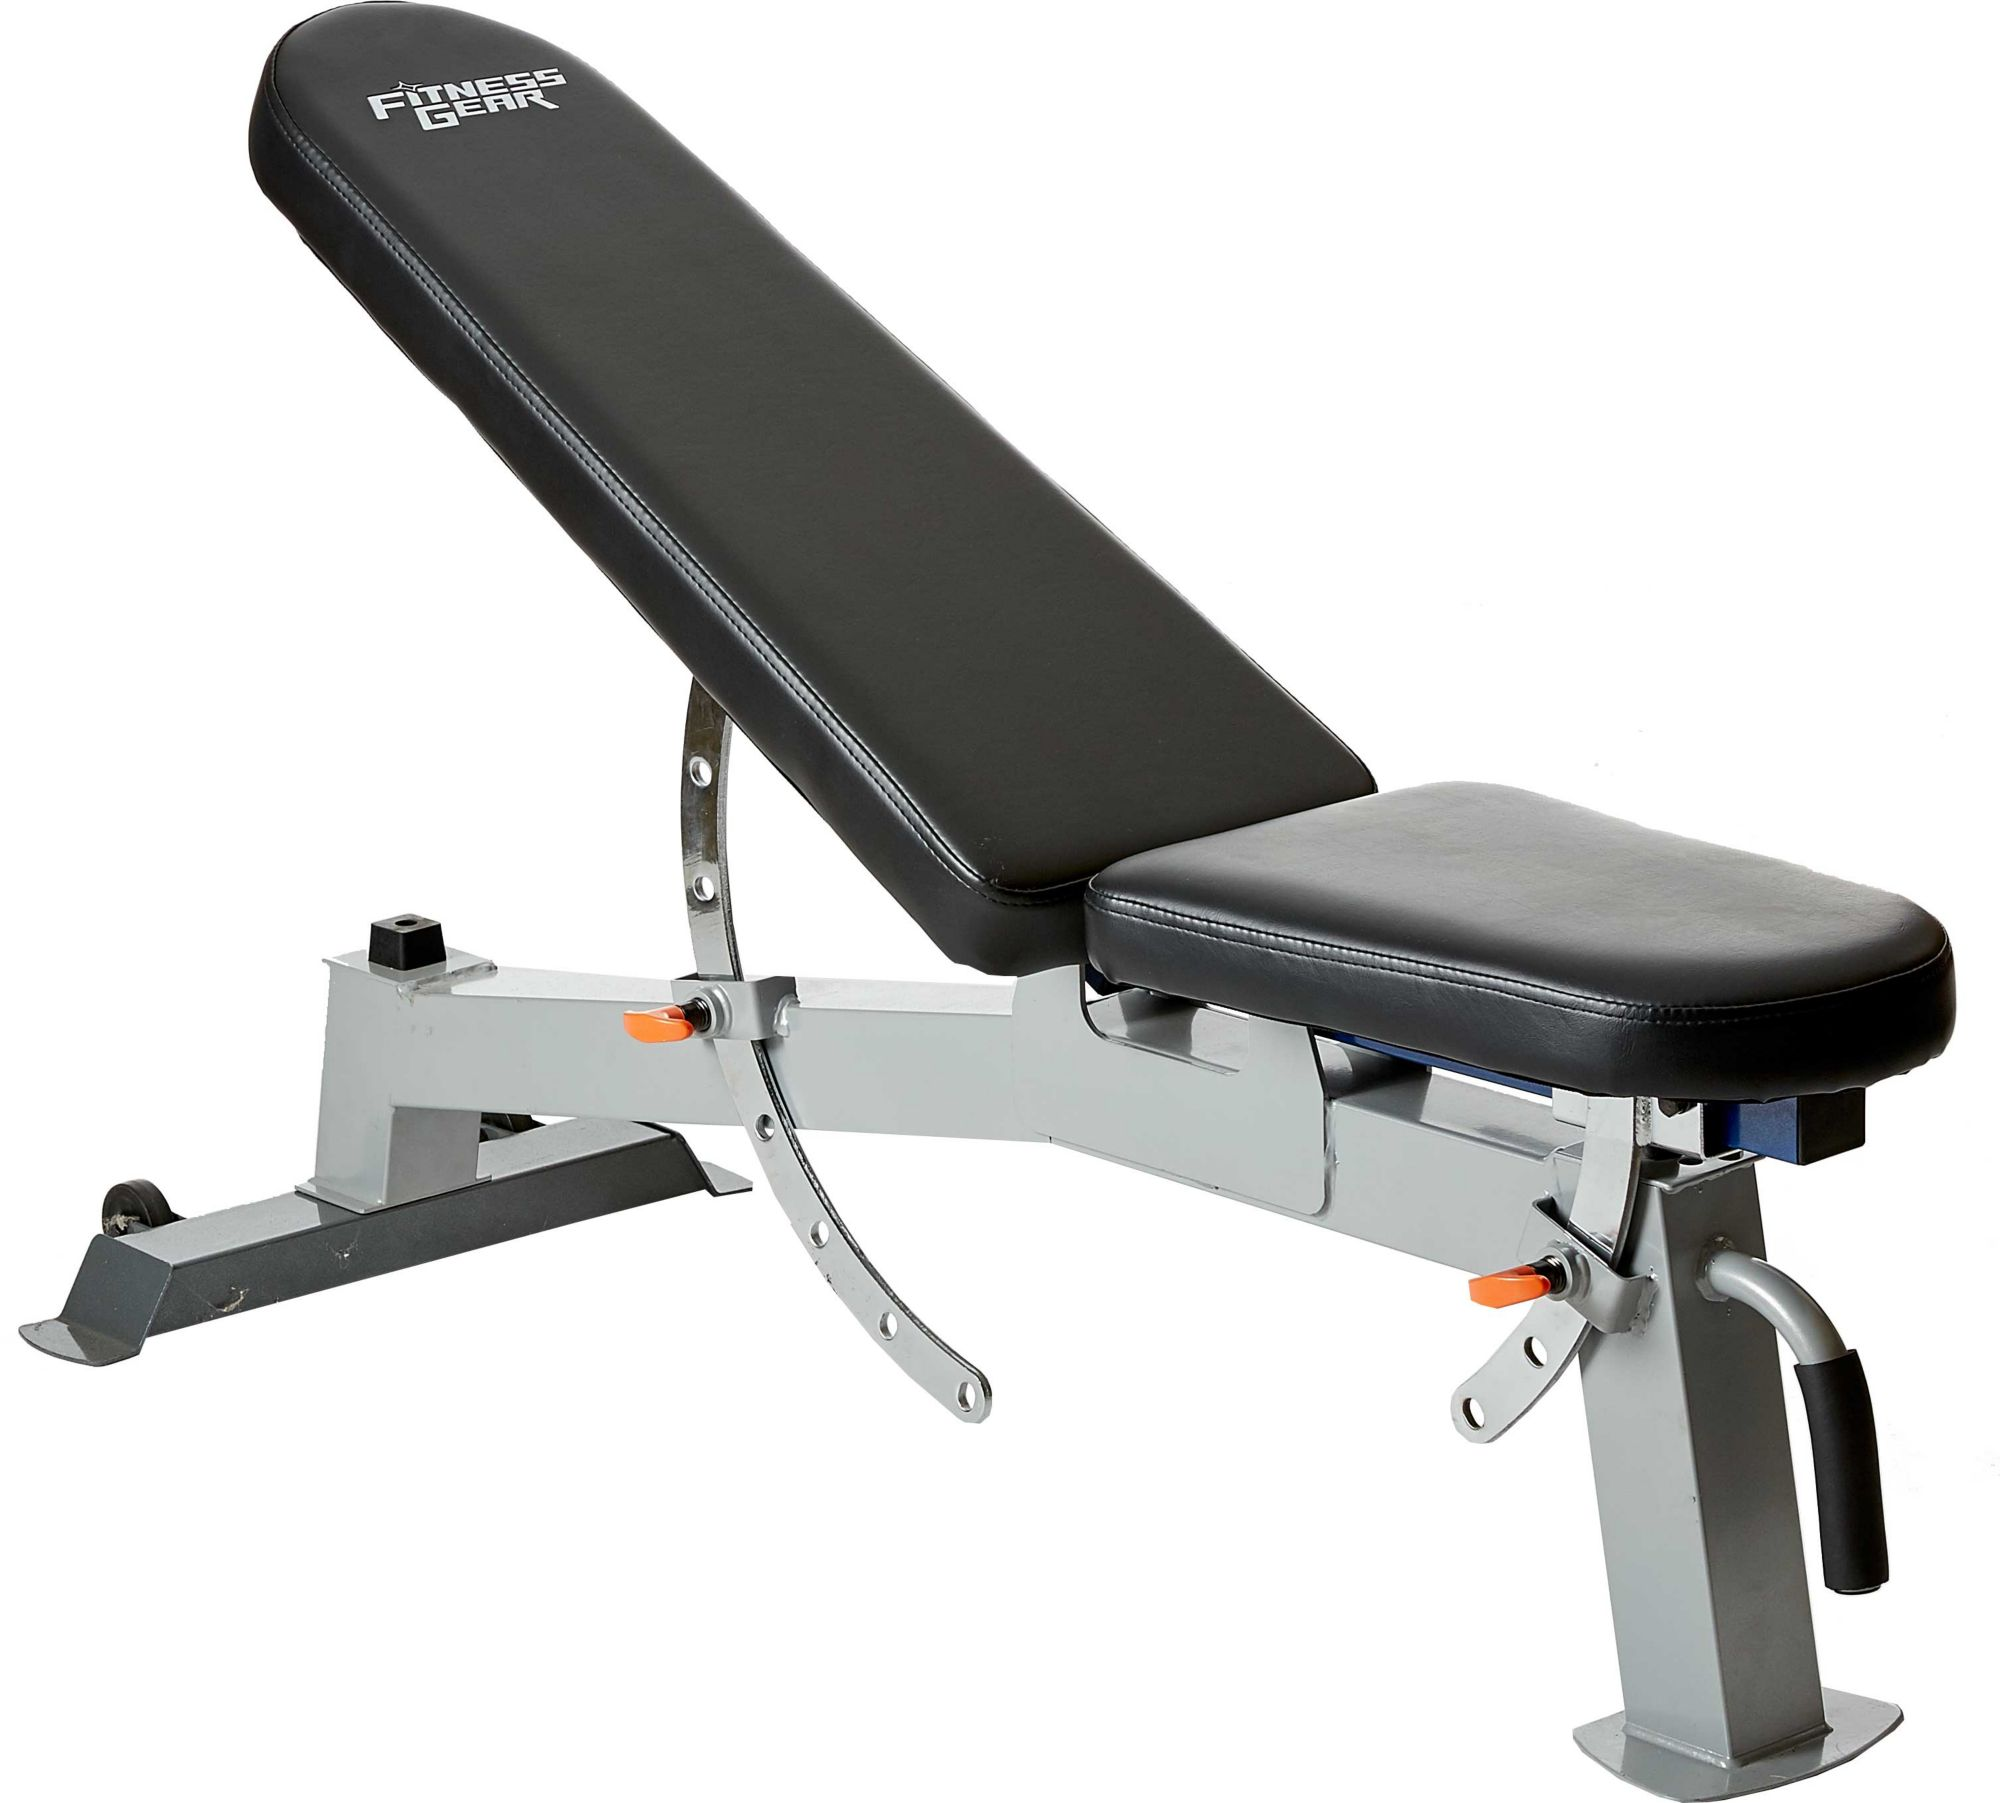 Fitness Gear Pro Utility Weight Bench Dick S Sporting Goods